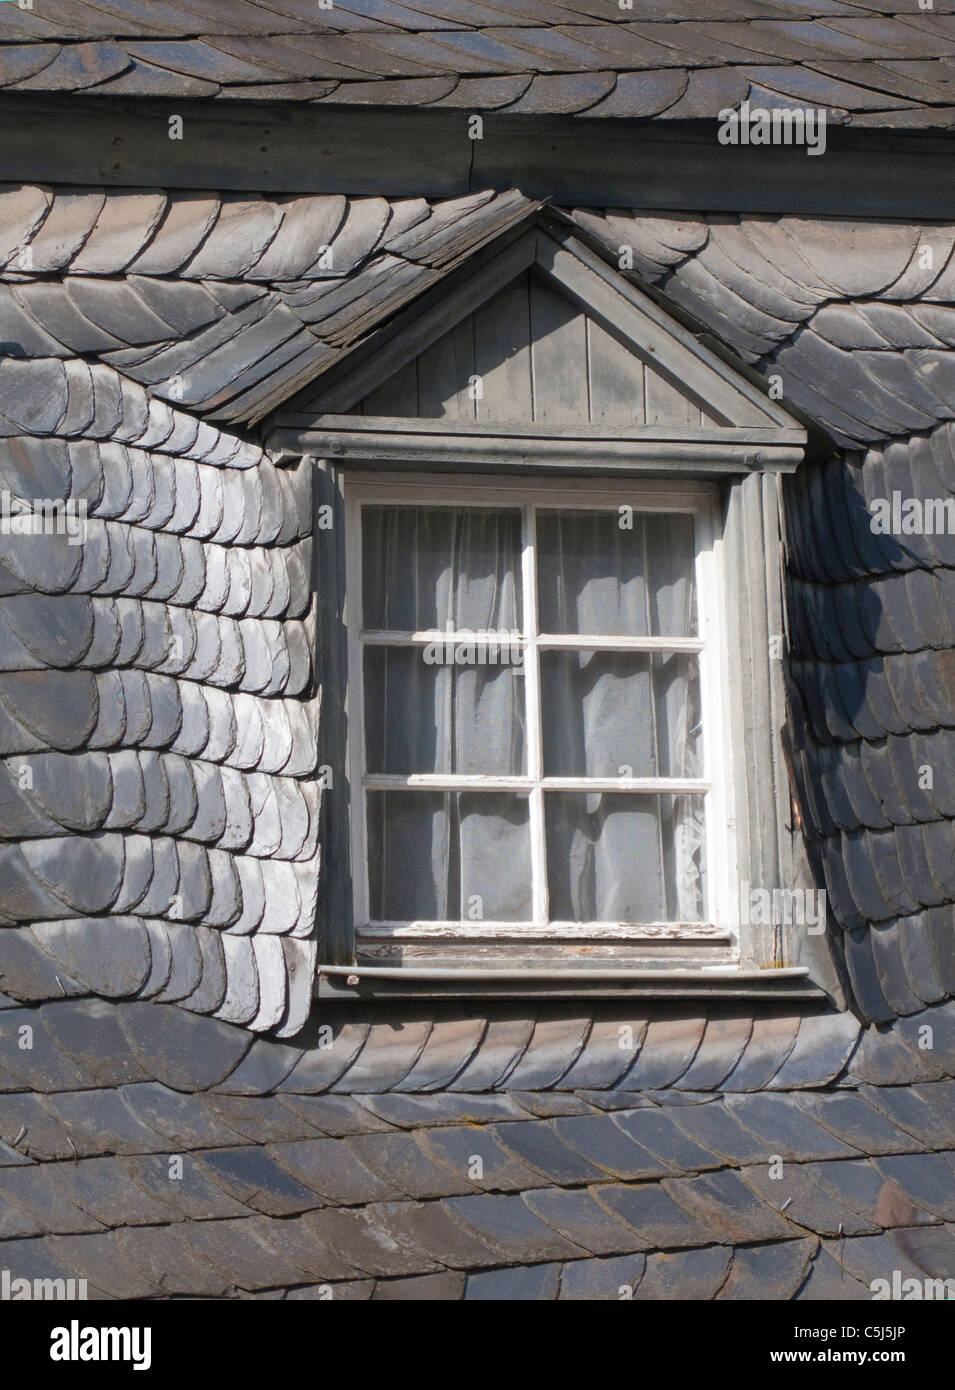 Mit Schiefern gedecktes Dach, Dachfenster, Haus in Bernkastel-Kues, Mosel, Slated roof, window, Moselle, - Stock Image